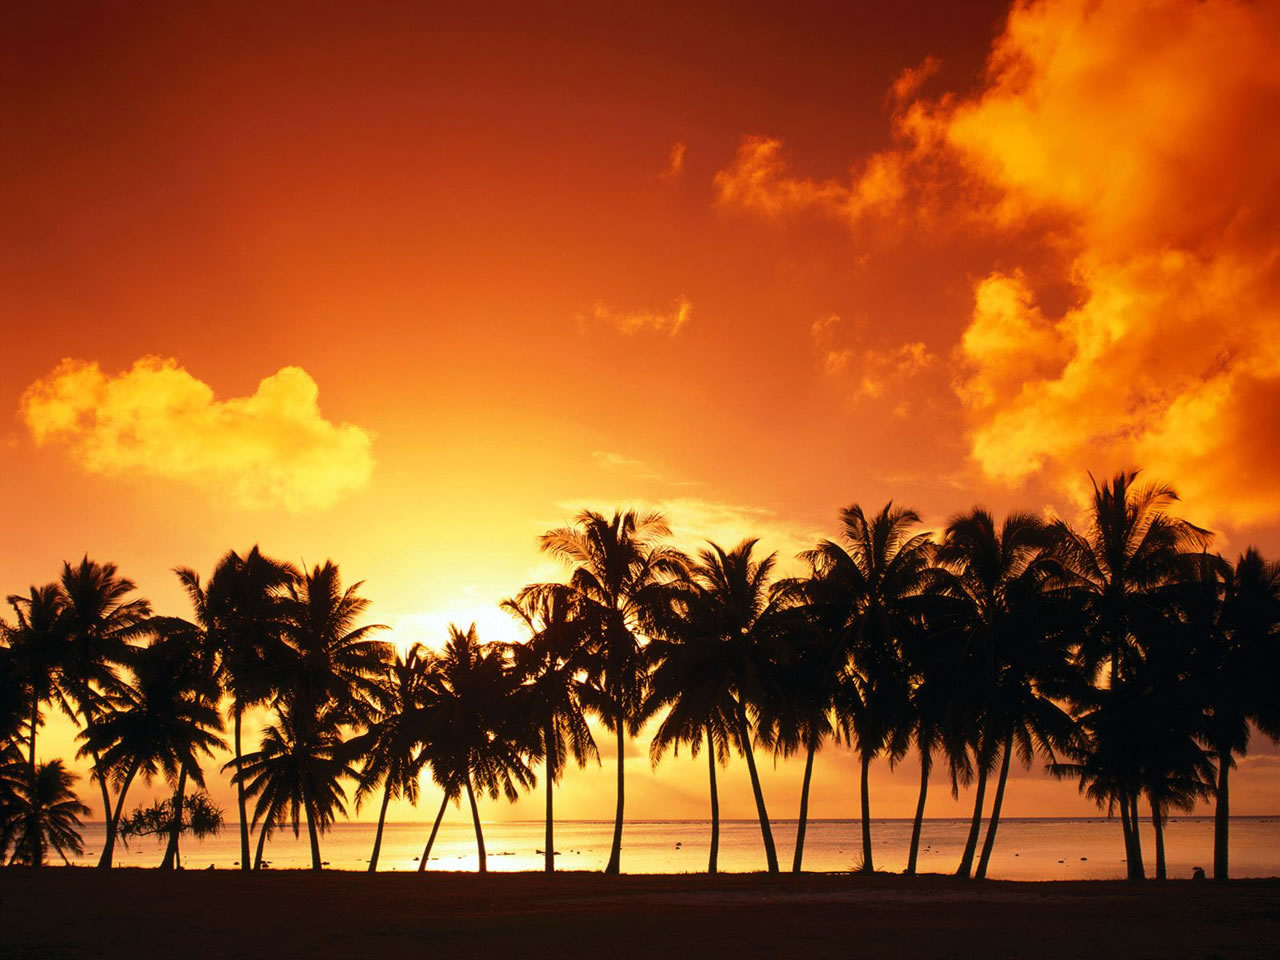 Sunset Over Beach Of Palm Trees Hd Wallpaper: Sunset Behind The Trees